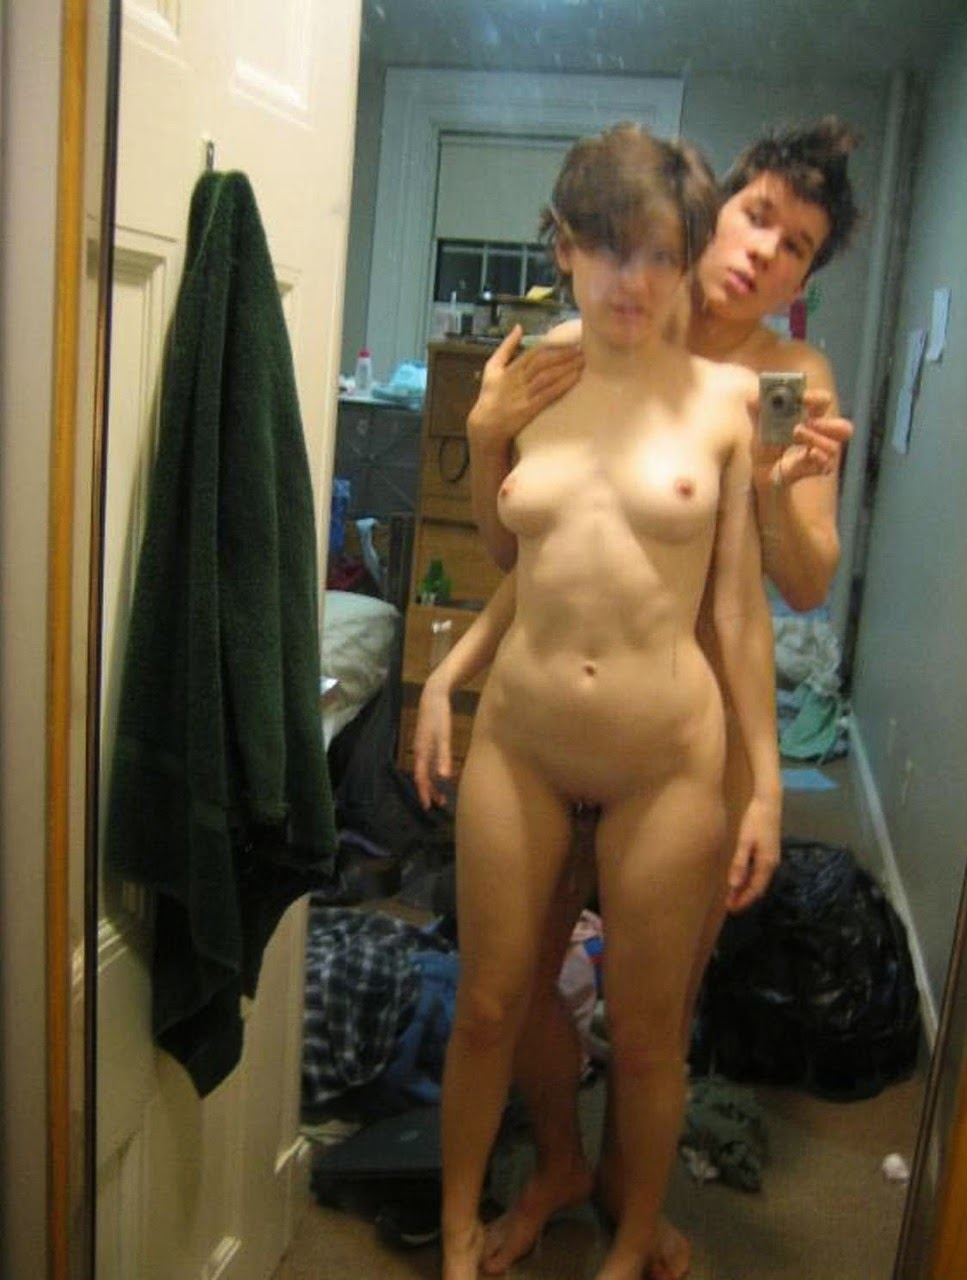 Amateur mirror self shot sex opinion you